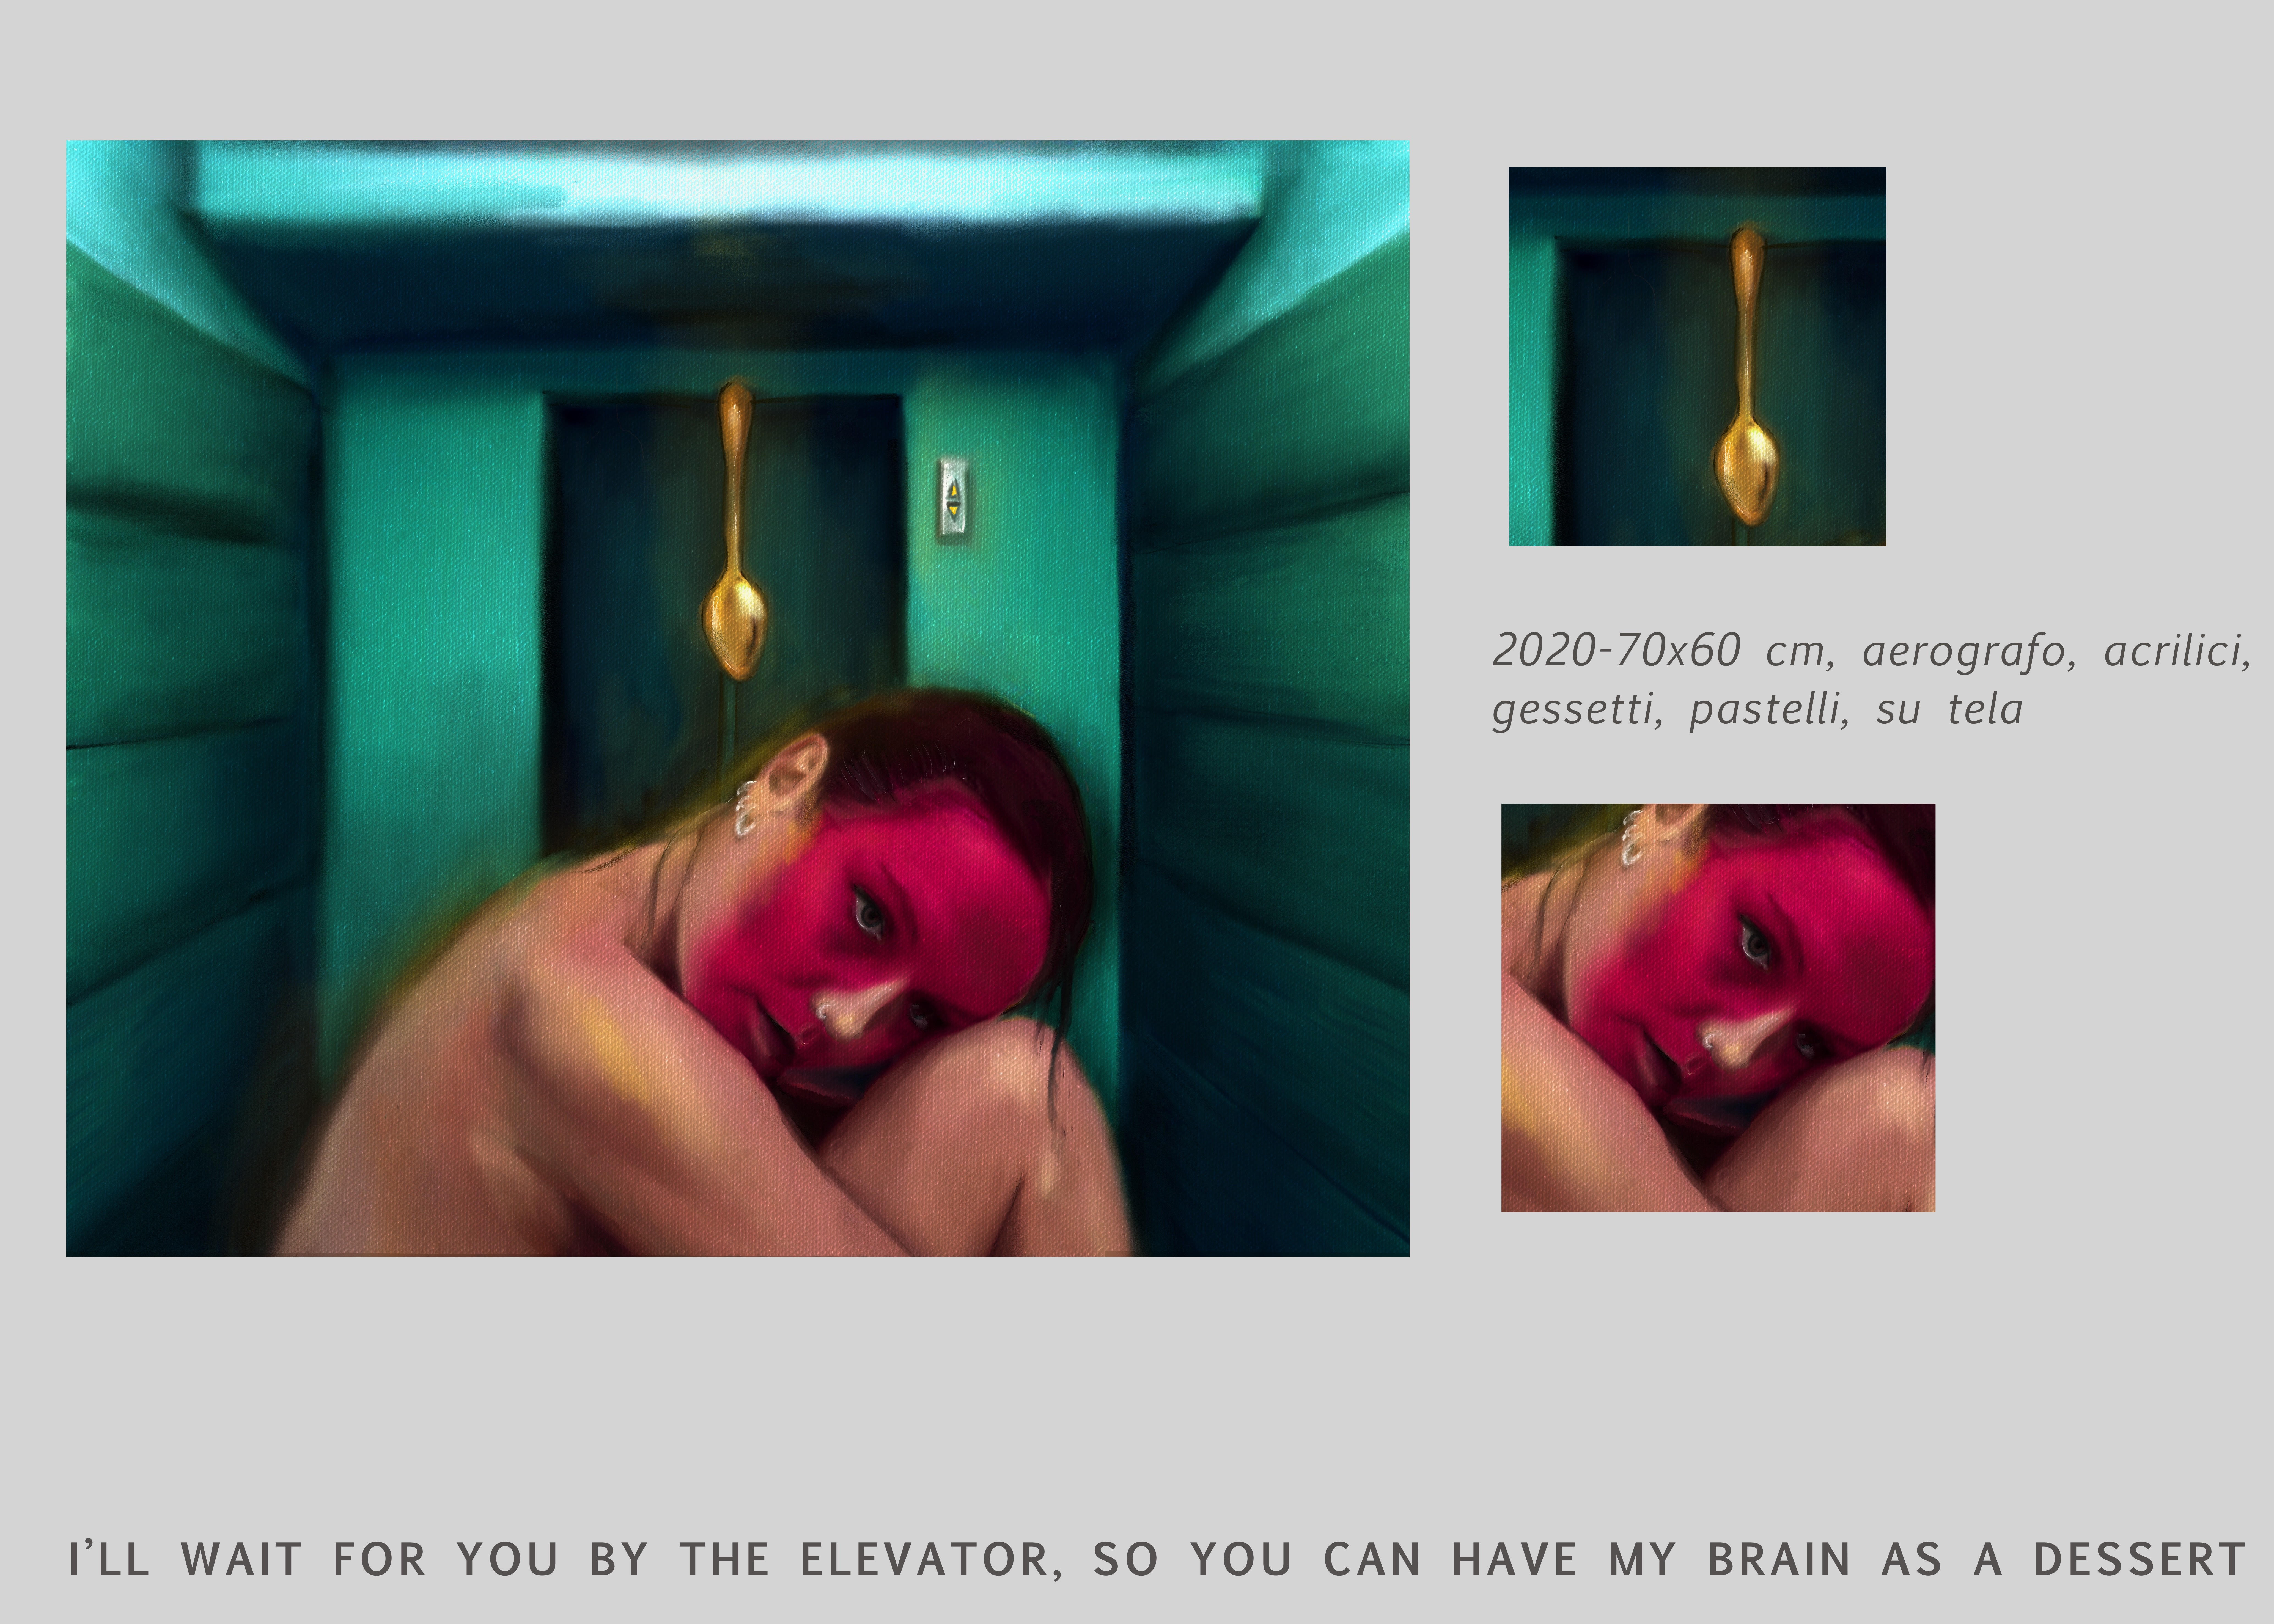 I'LL WAIT FOR YOU BY THE ELEVATOR SO YOU CAN HAVE MY BRAIN AS A DESSERT-CHIARA LUISE